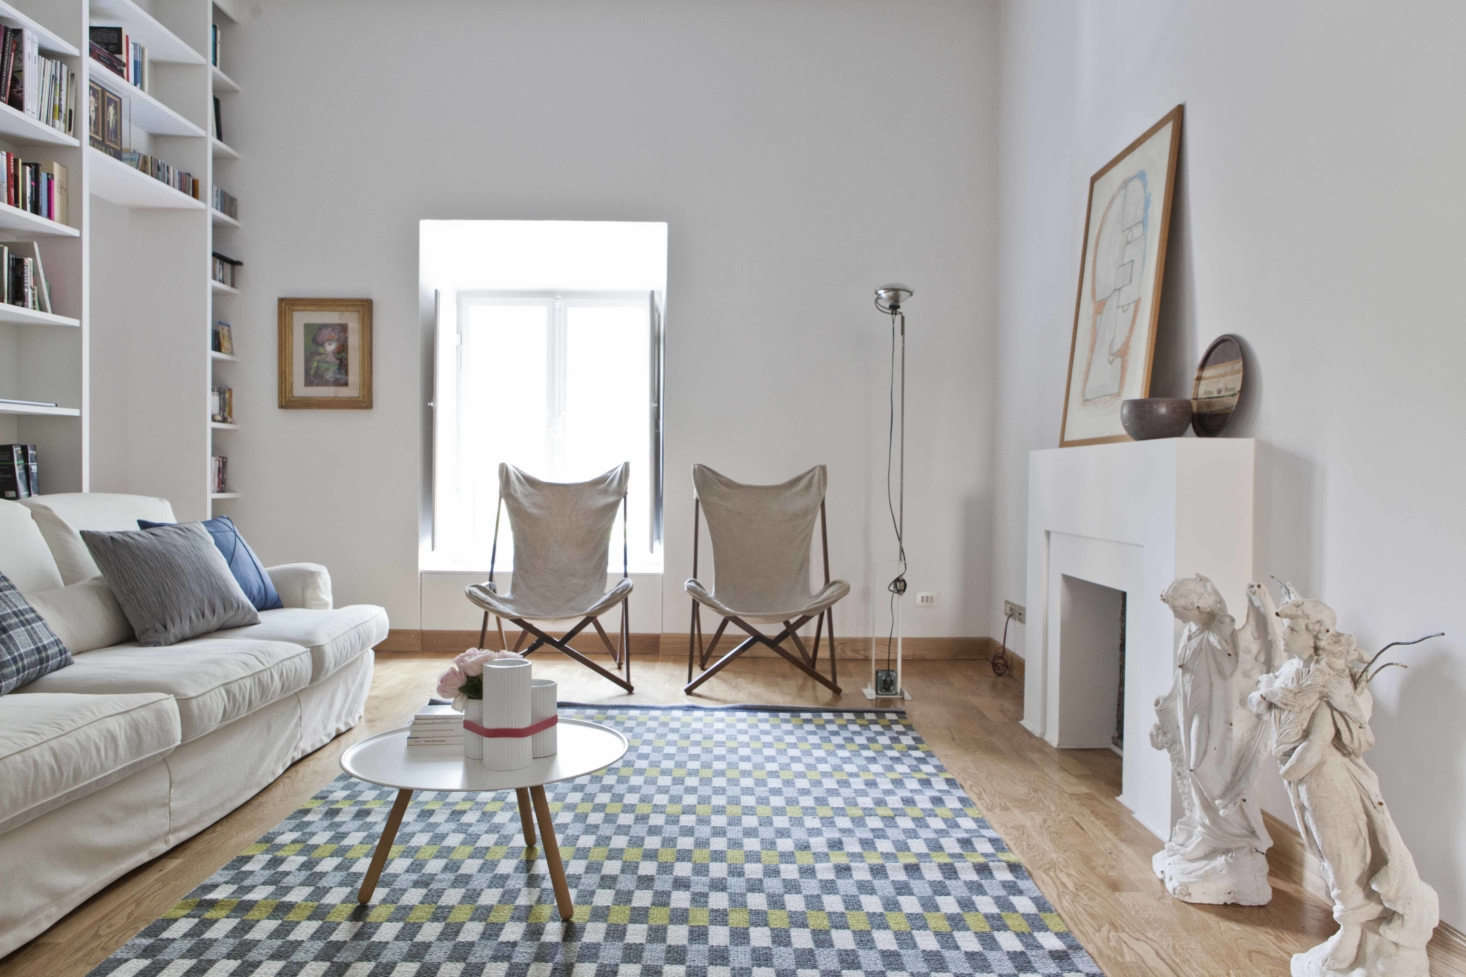 Ping Pong House: A Playful but Serene 19th-Century House in Rome, Transformed